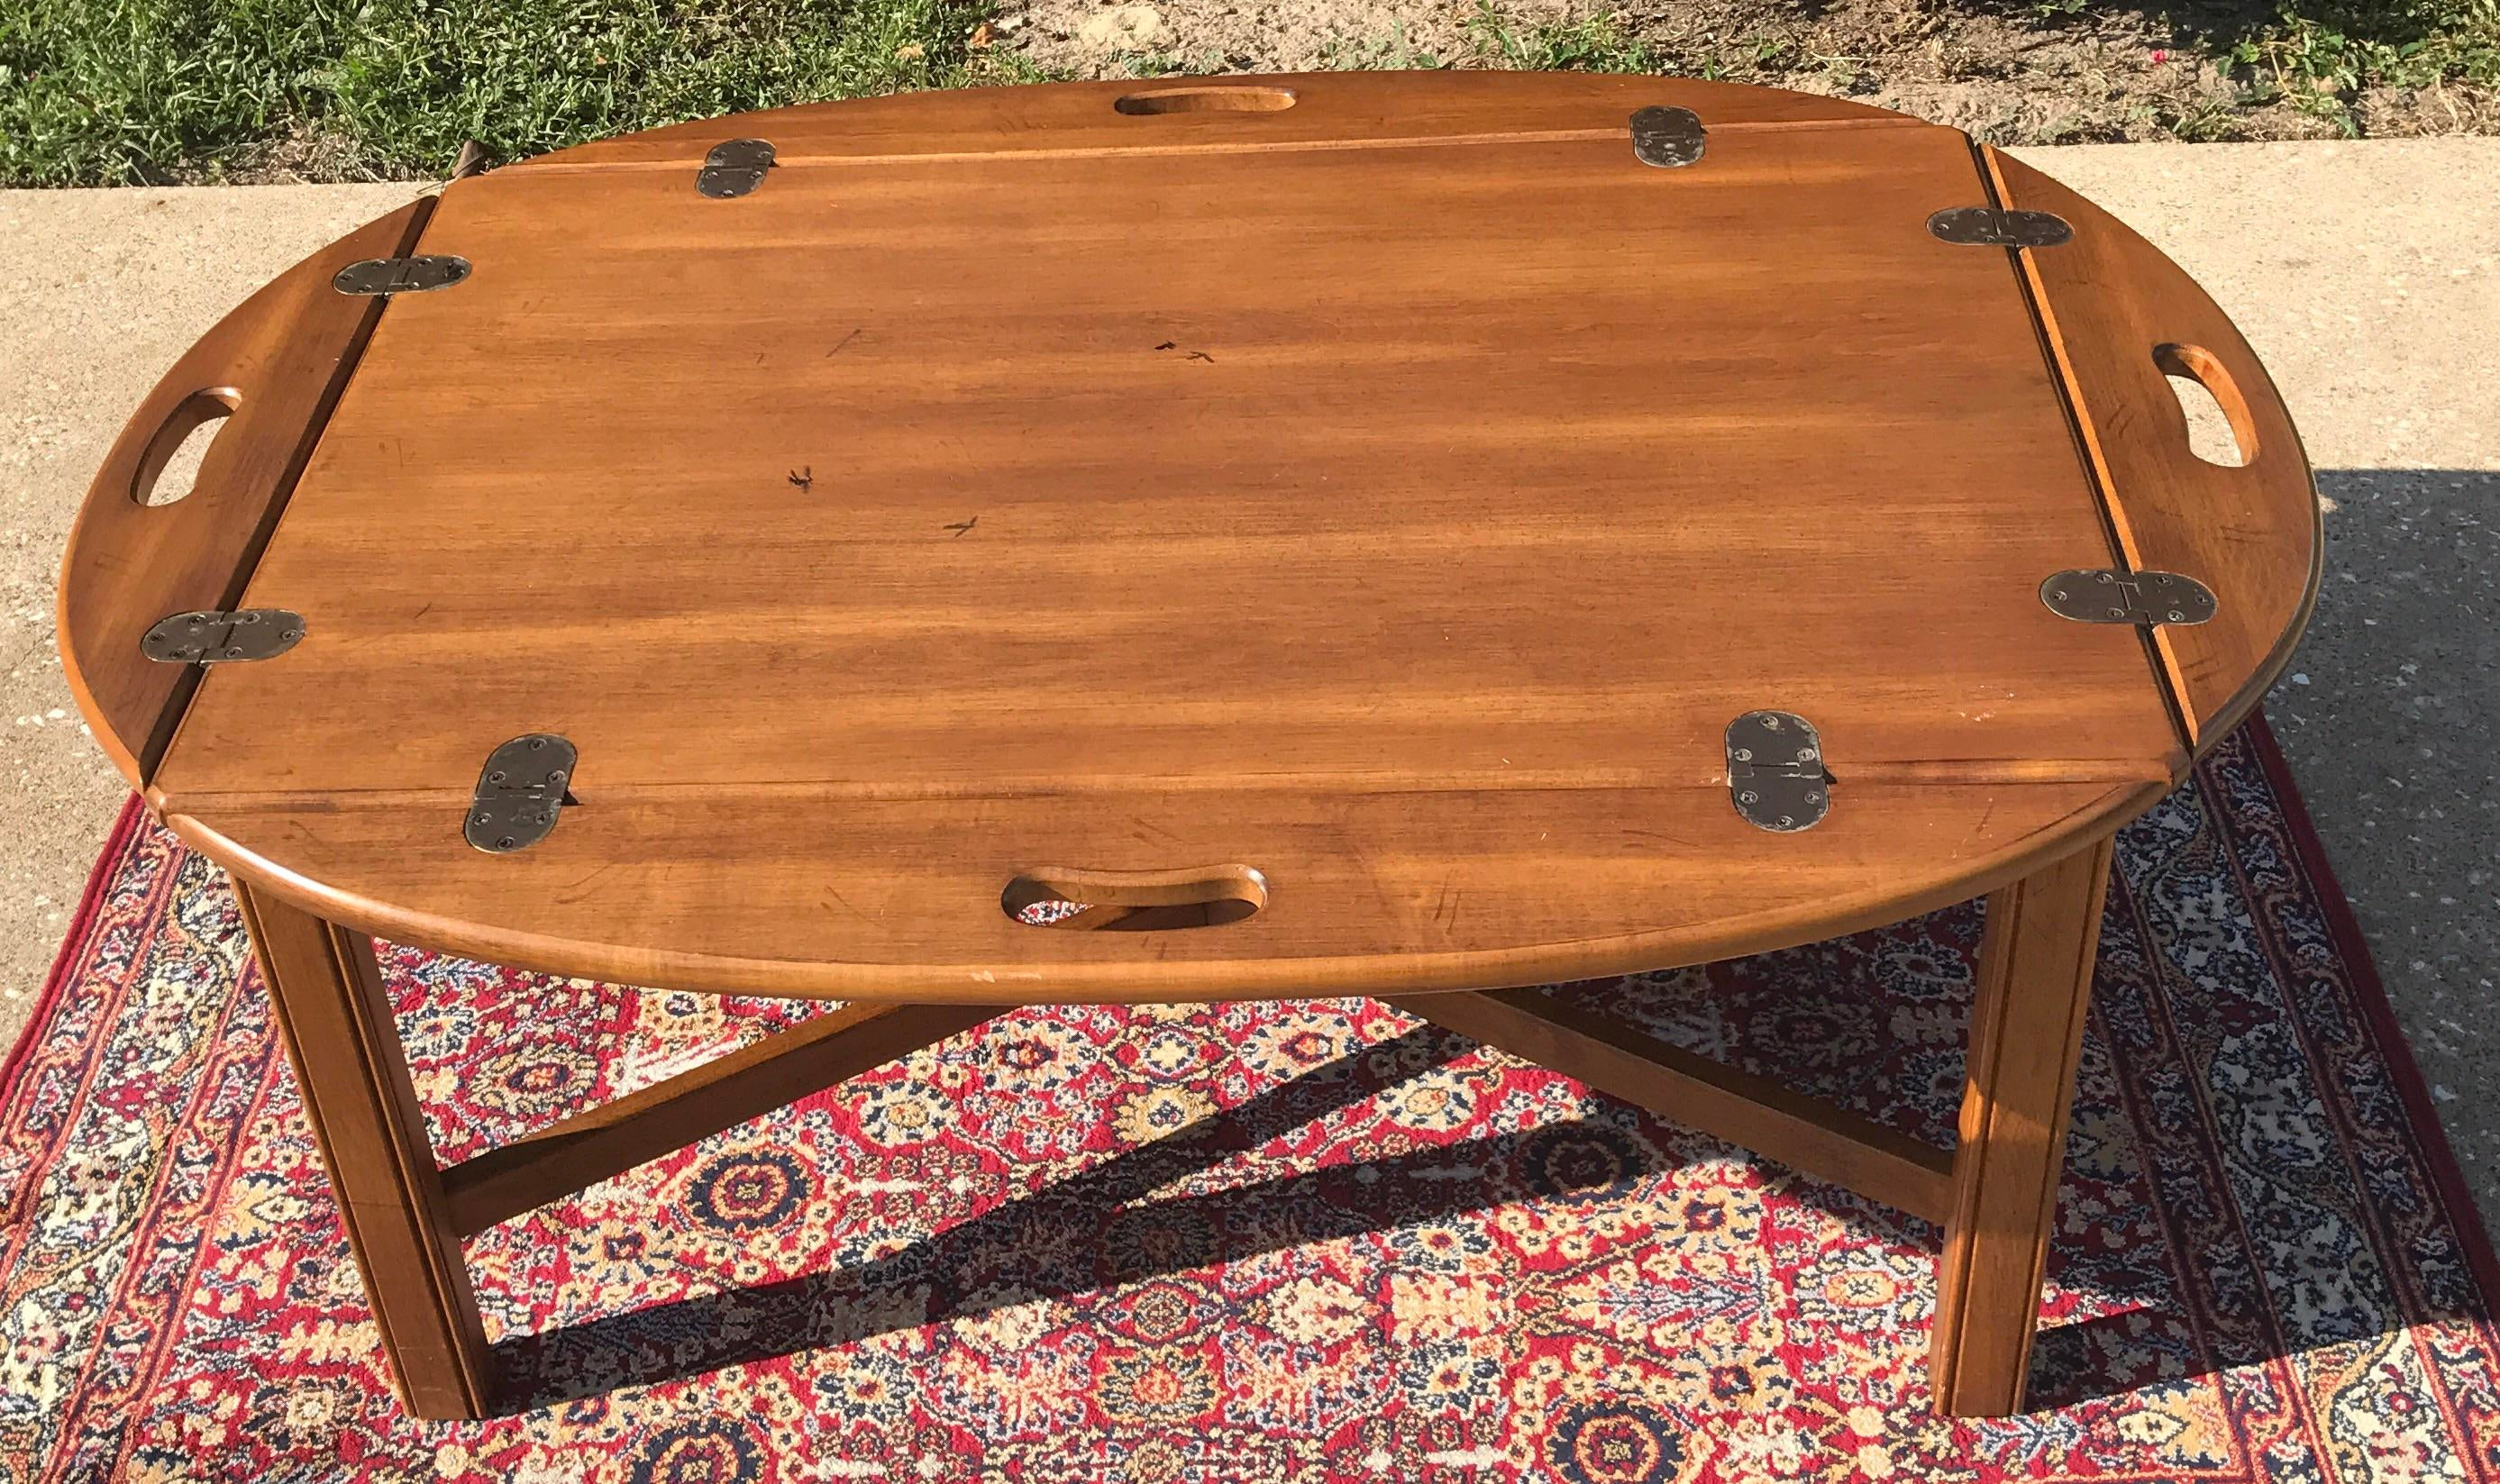 Vintage Ethan Allen Butleru0027s Tray Coffee Table   Image 2 Of 11